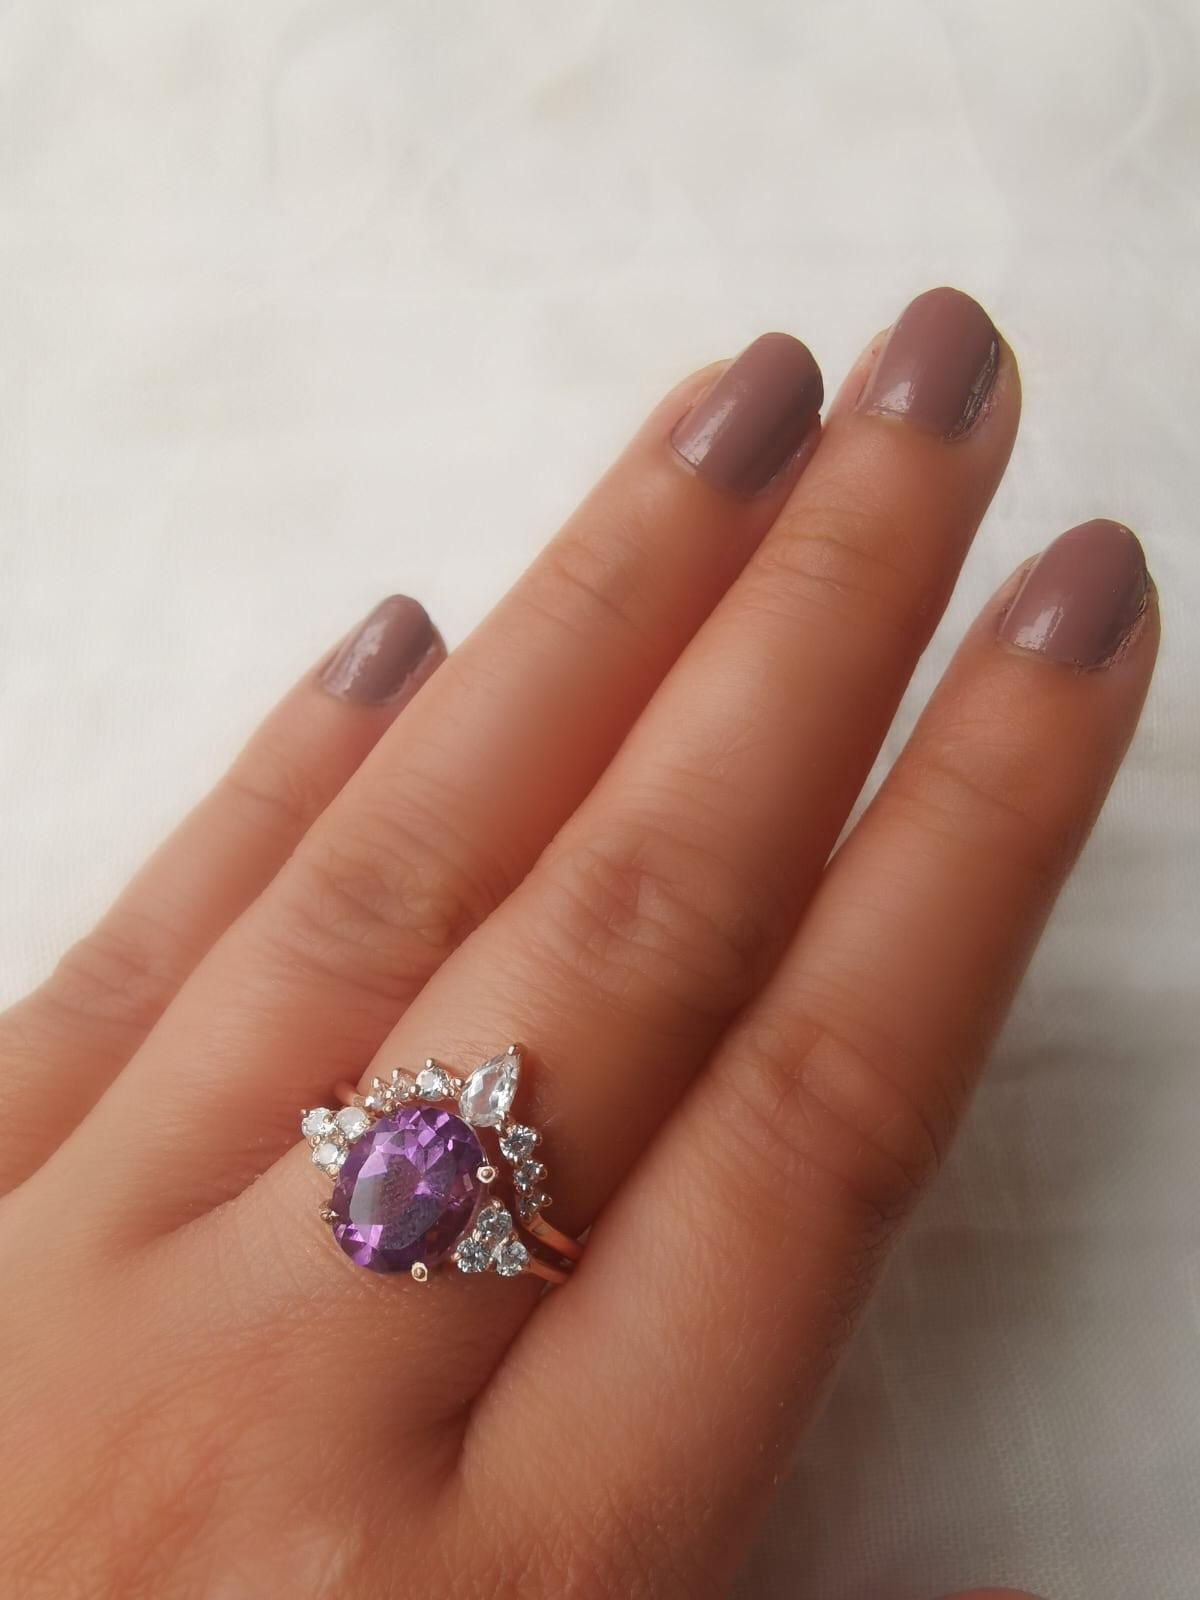 The Princess Ring/18k Rose Gold Vermeil Amethyst & White Topaz - infinityXinfinity.co.uk